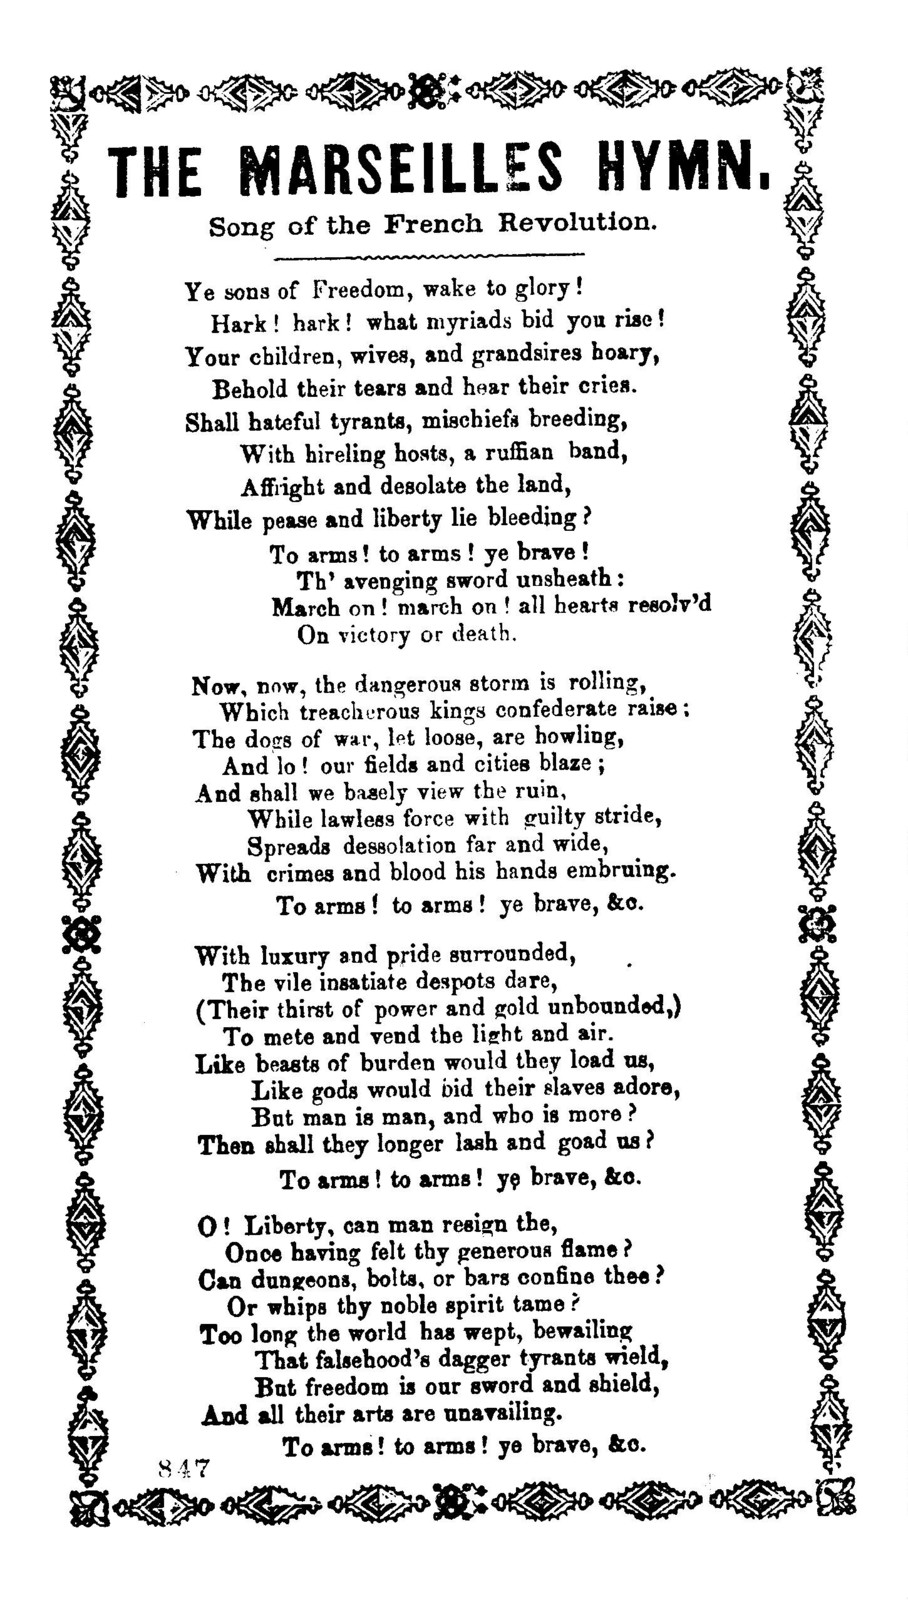 The Marseilles hymn. Song of the French Revolution